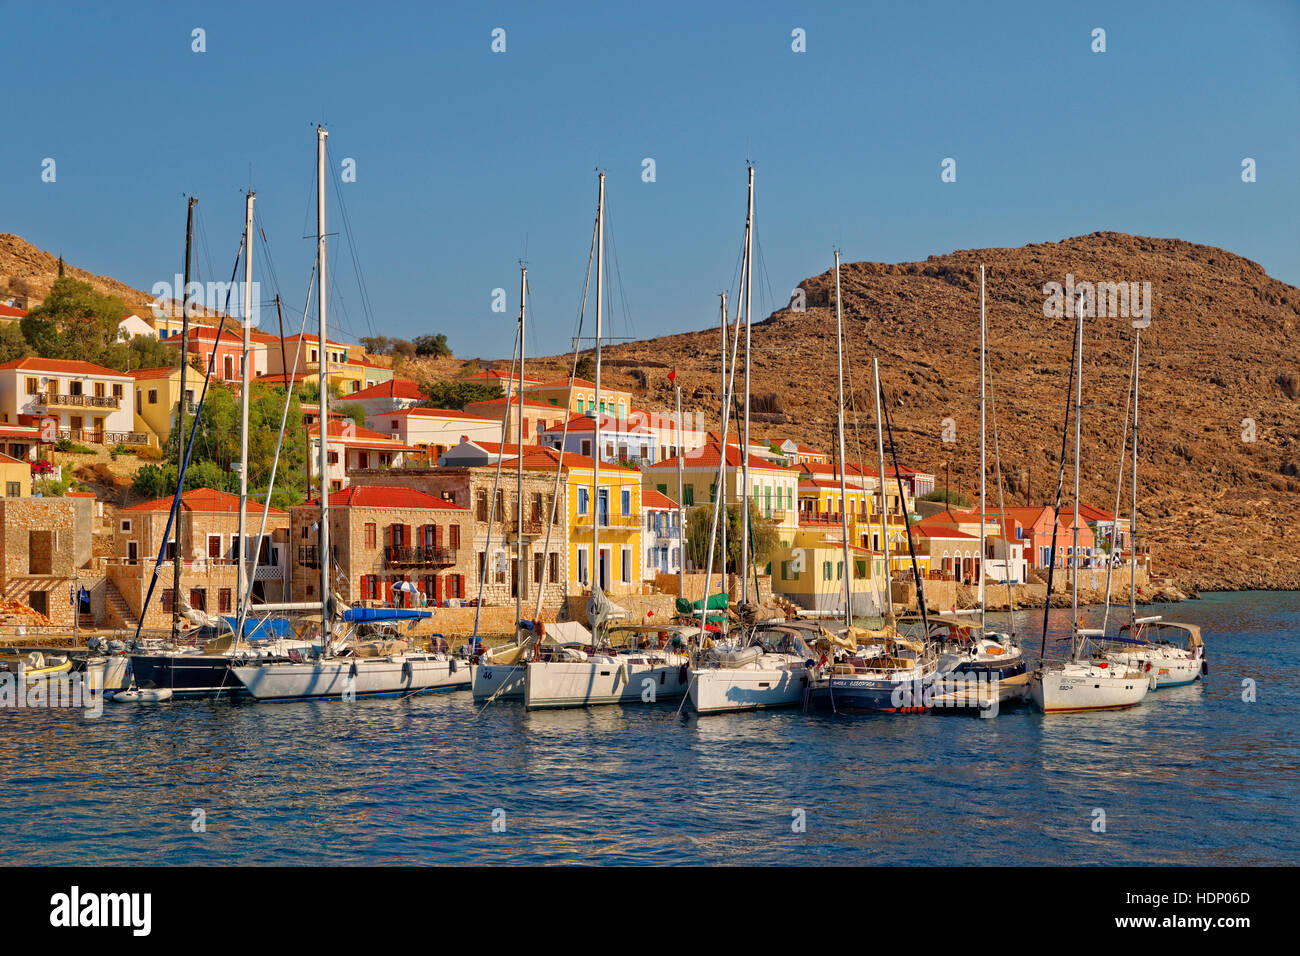 Yacht berths at Chalki town, Greek island of Chalki situated off the north coast of Rhodes, Dodecanese Island group, Stock Photo